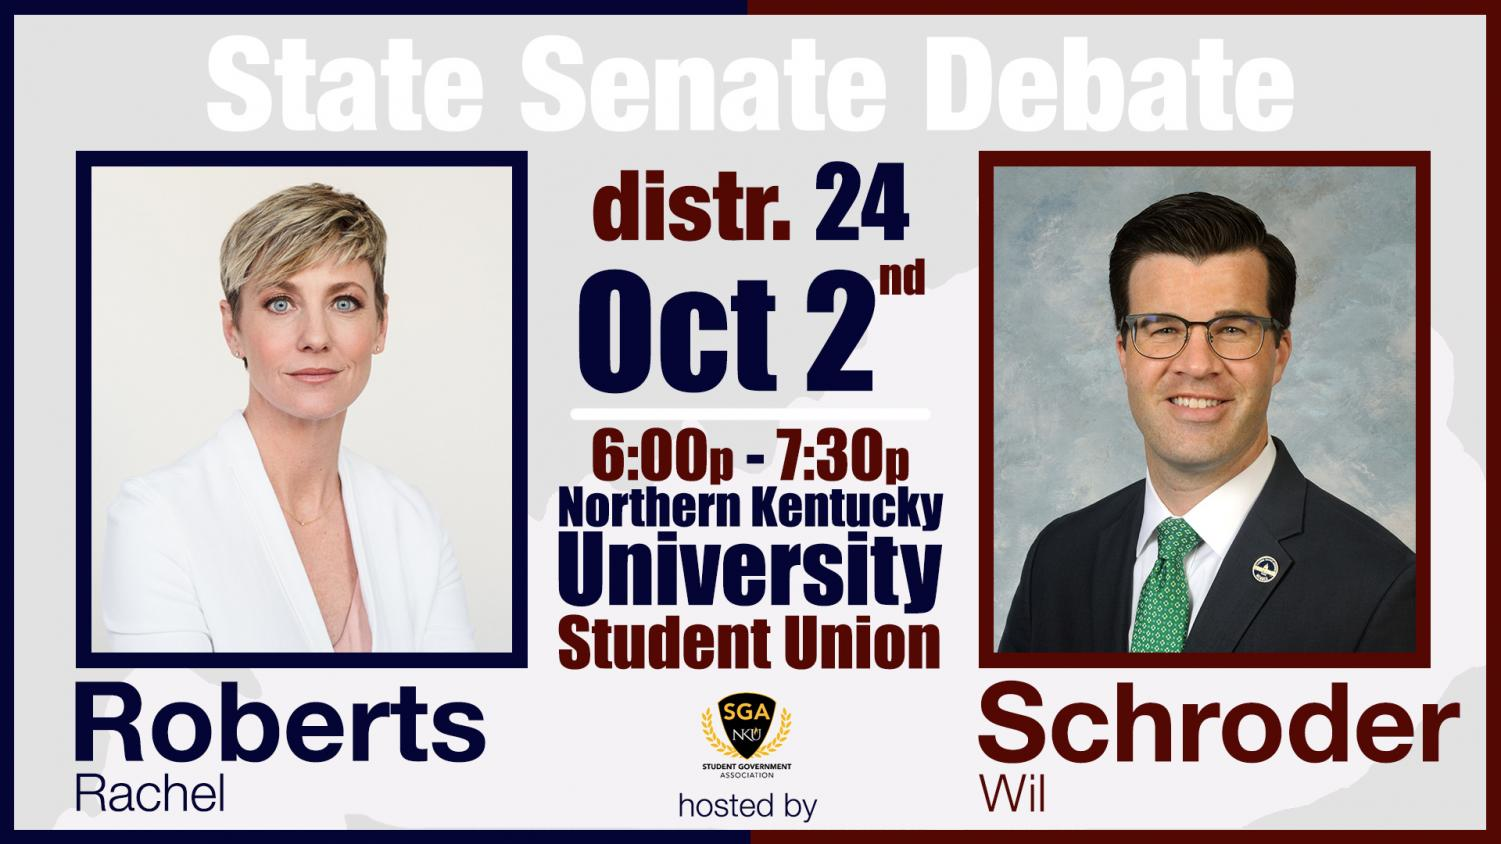 Sen. Wil Schroder and Rachel Roberts are running in NKU's district, which includes Campbell, Bracken and Pendleton counties.